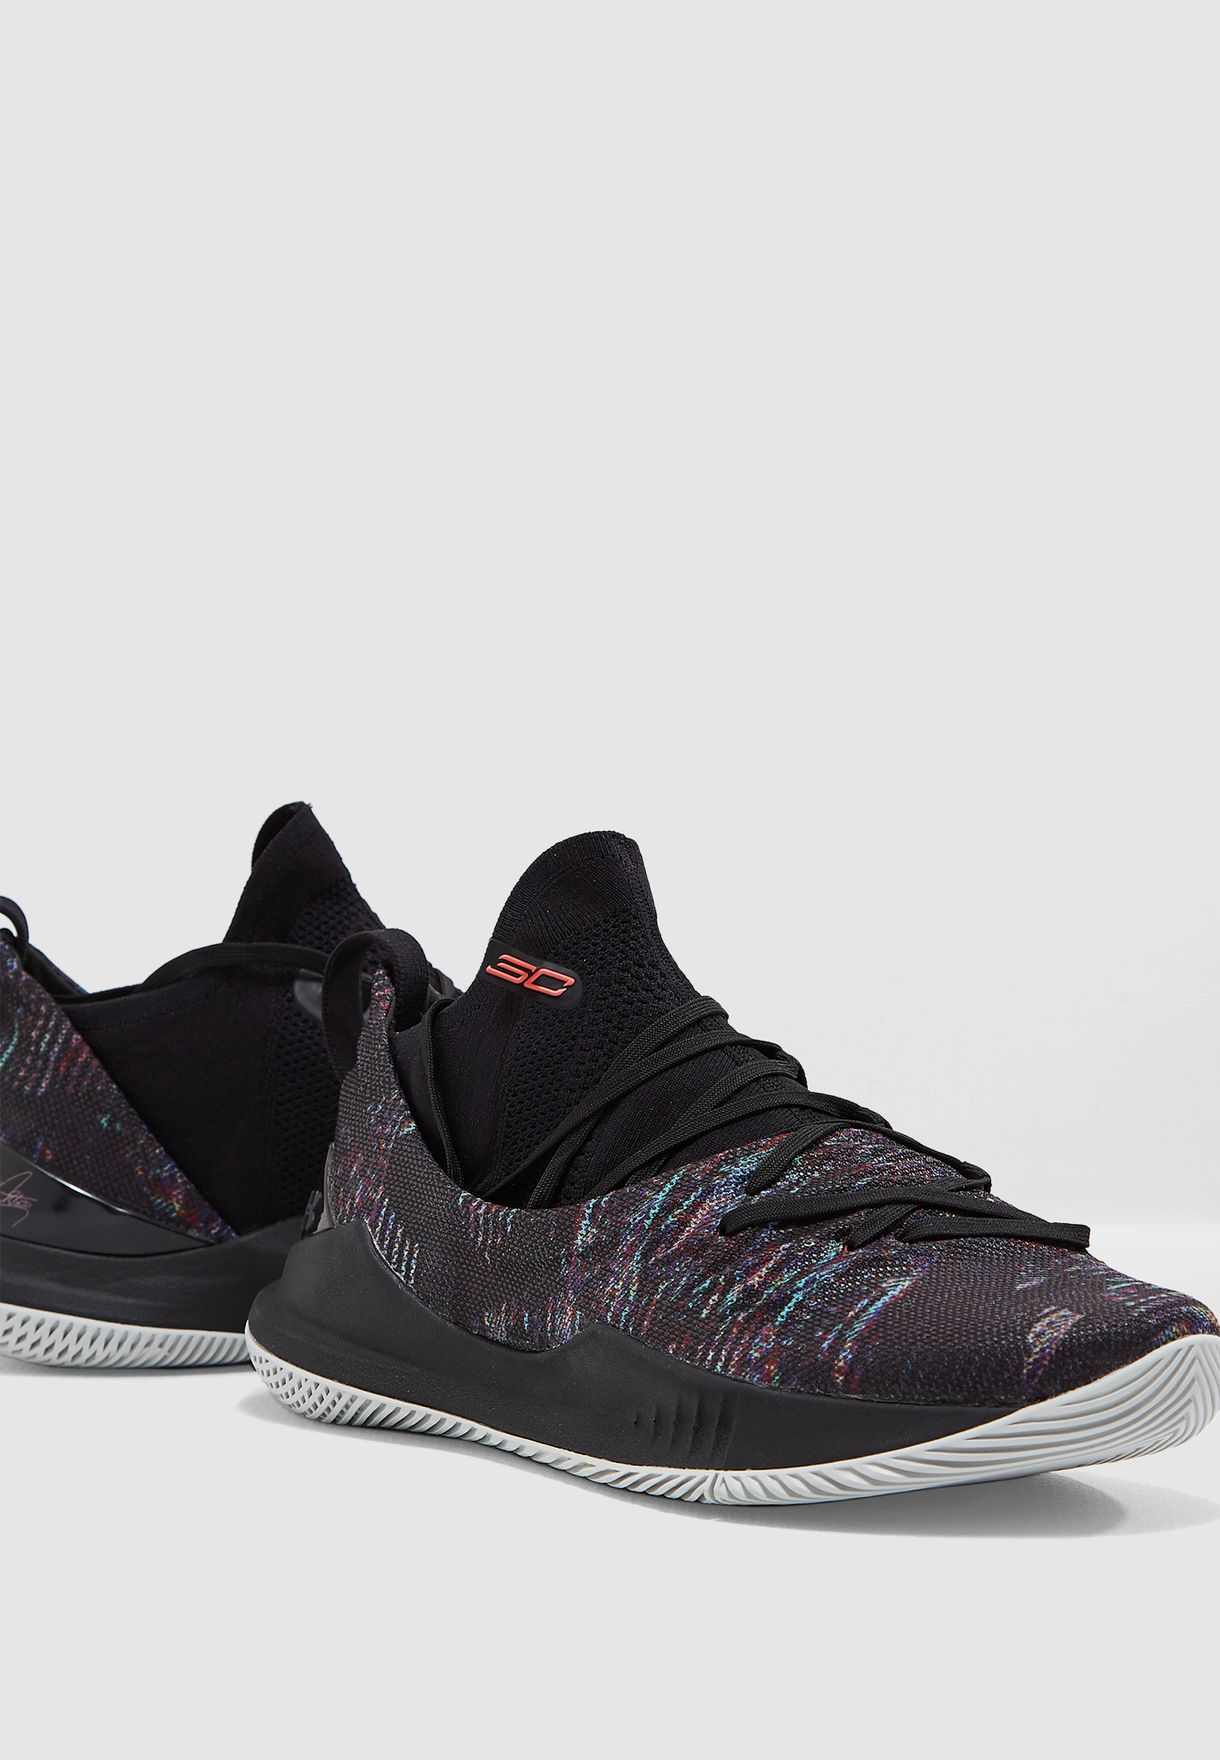 284c1e65eb0b Shop Under Armour multicolor Curry 5 3020657-005 for Men in UAE -  UN700SH97MCO